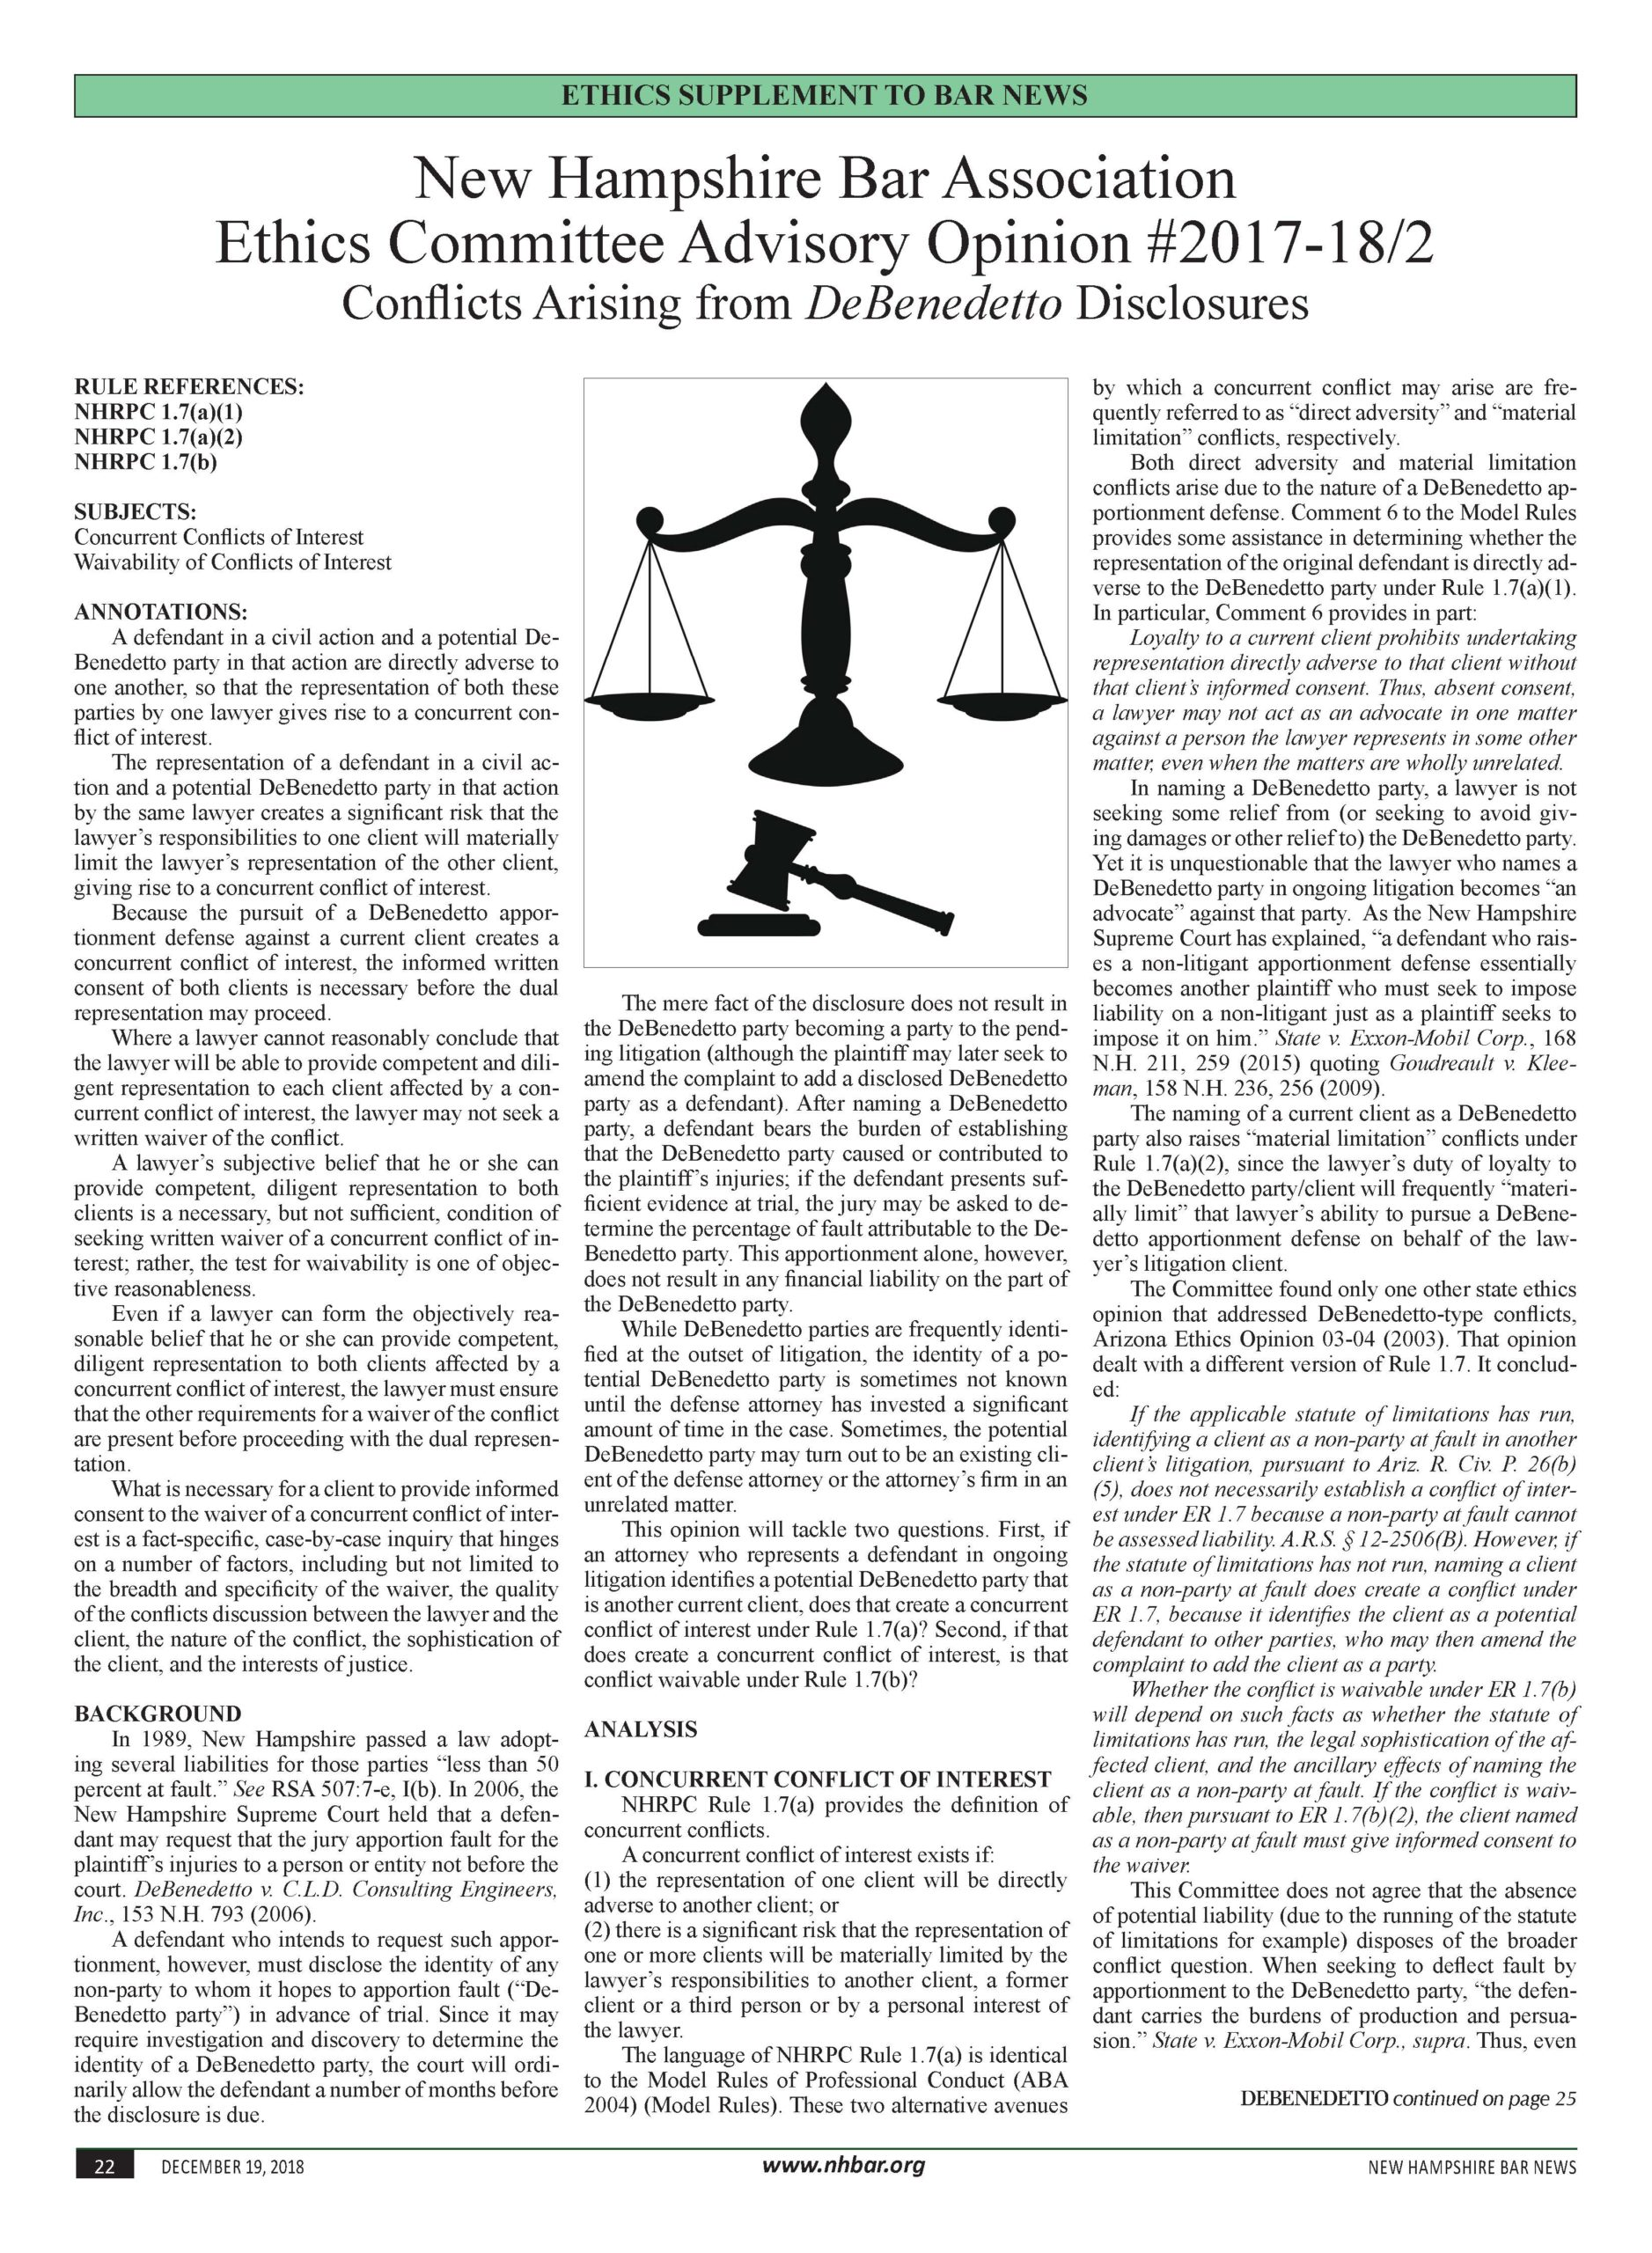 Bar News ~ Ethics & the Practice of Law 2018